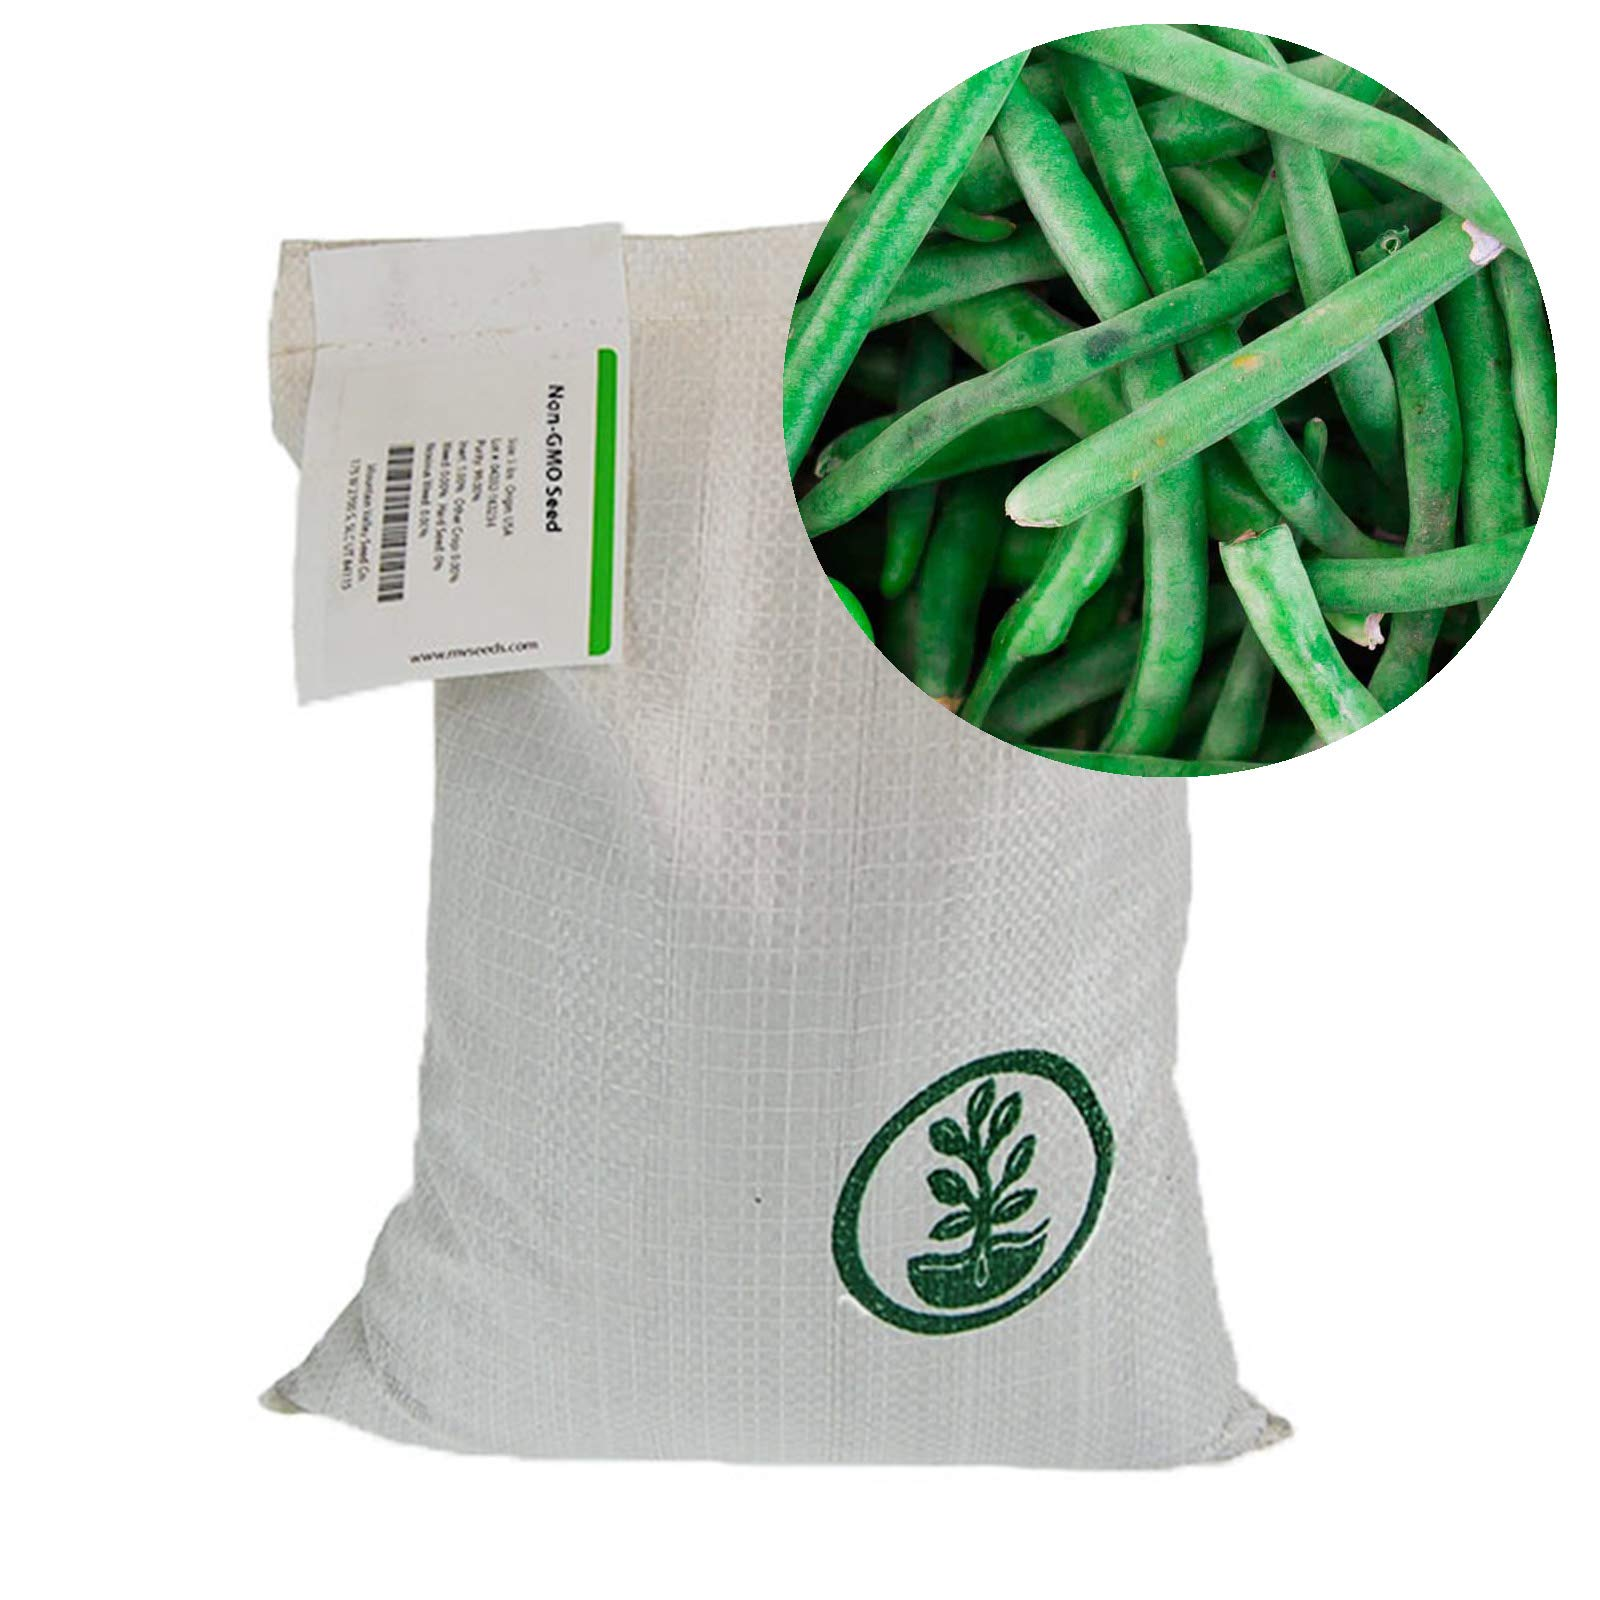 Mountain Valley Seed Company Jade Bush Bean Seeds - 50 Lb Bulk - Non-GMO, Heirloom Green Bean Seeds - Vegetable Garden Seeds